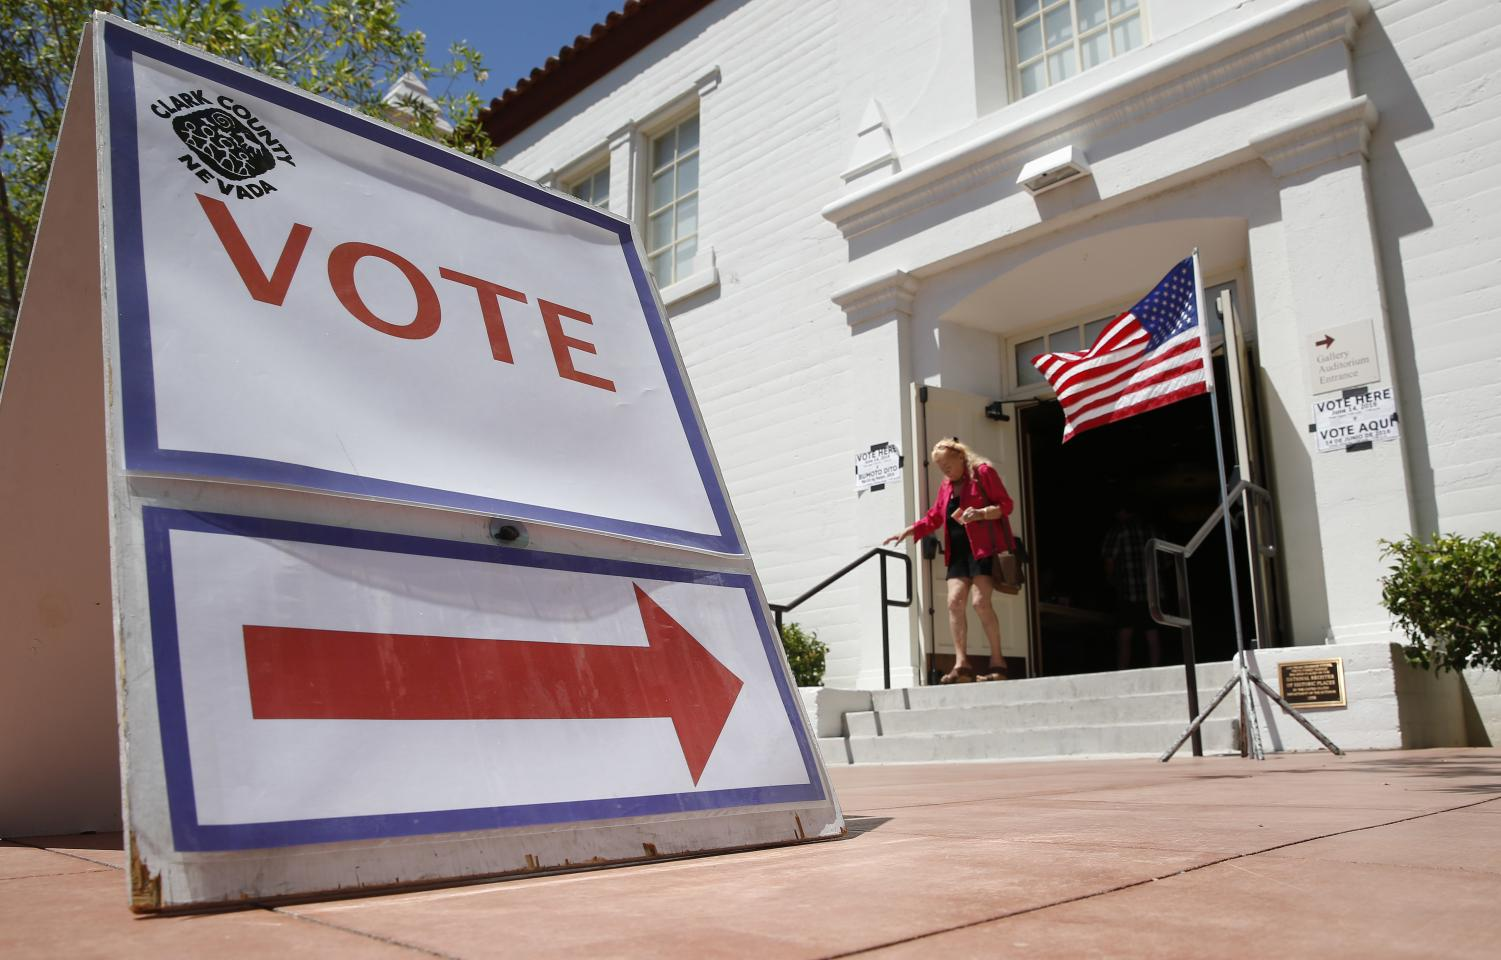 Despite talking a big game on social media, only 3 percent of registered millennial voters actually voted in the recent Illinois primary elections. (John Locher| AP)